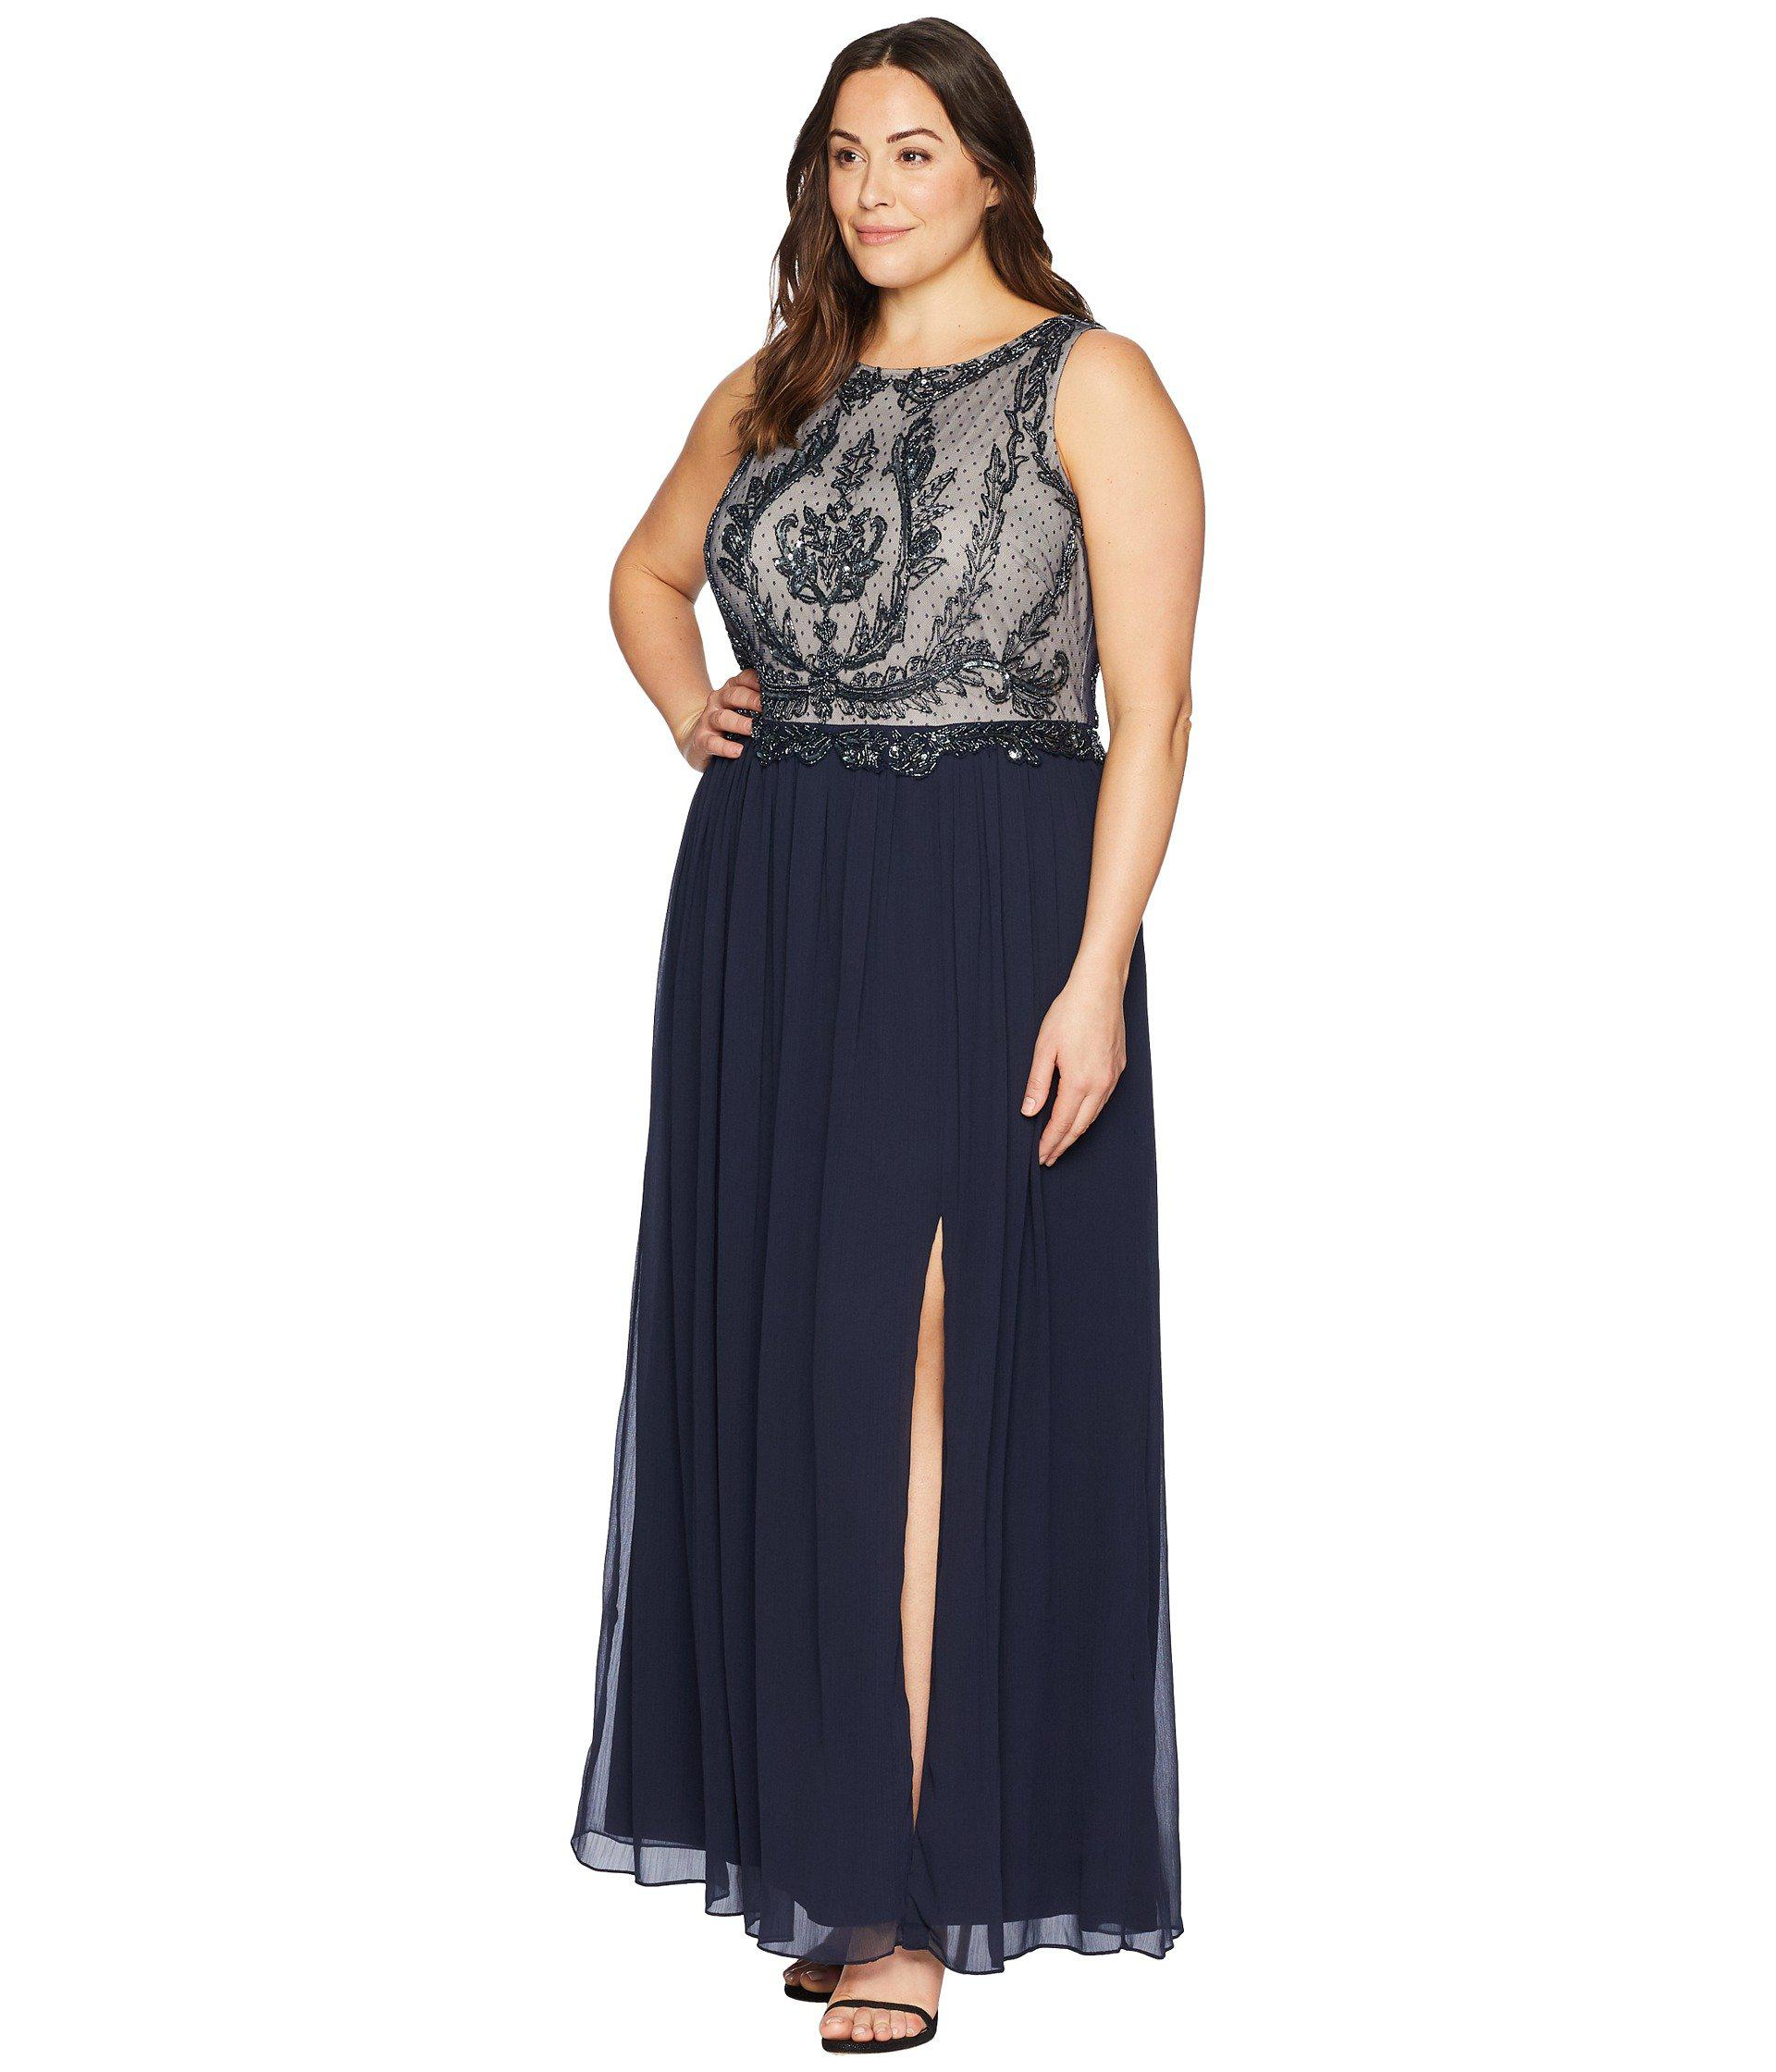 Lyst - Adrianna Papell Plus Size Sleeveless Bead Bodice Gown in Blue